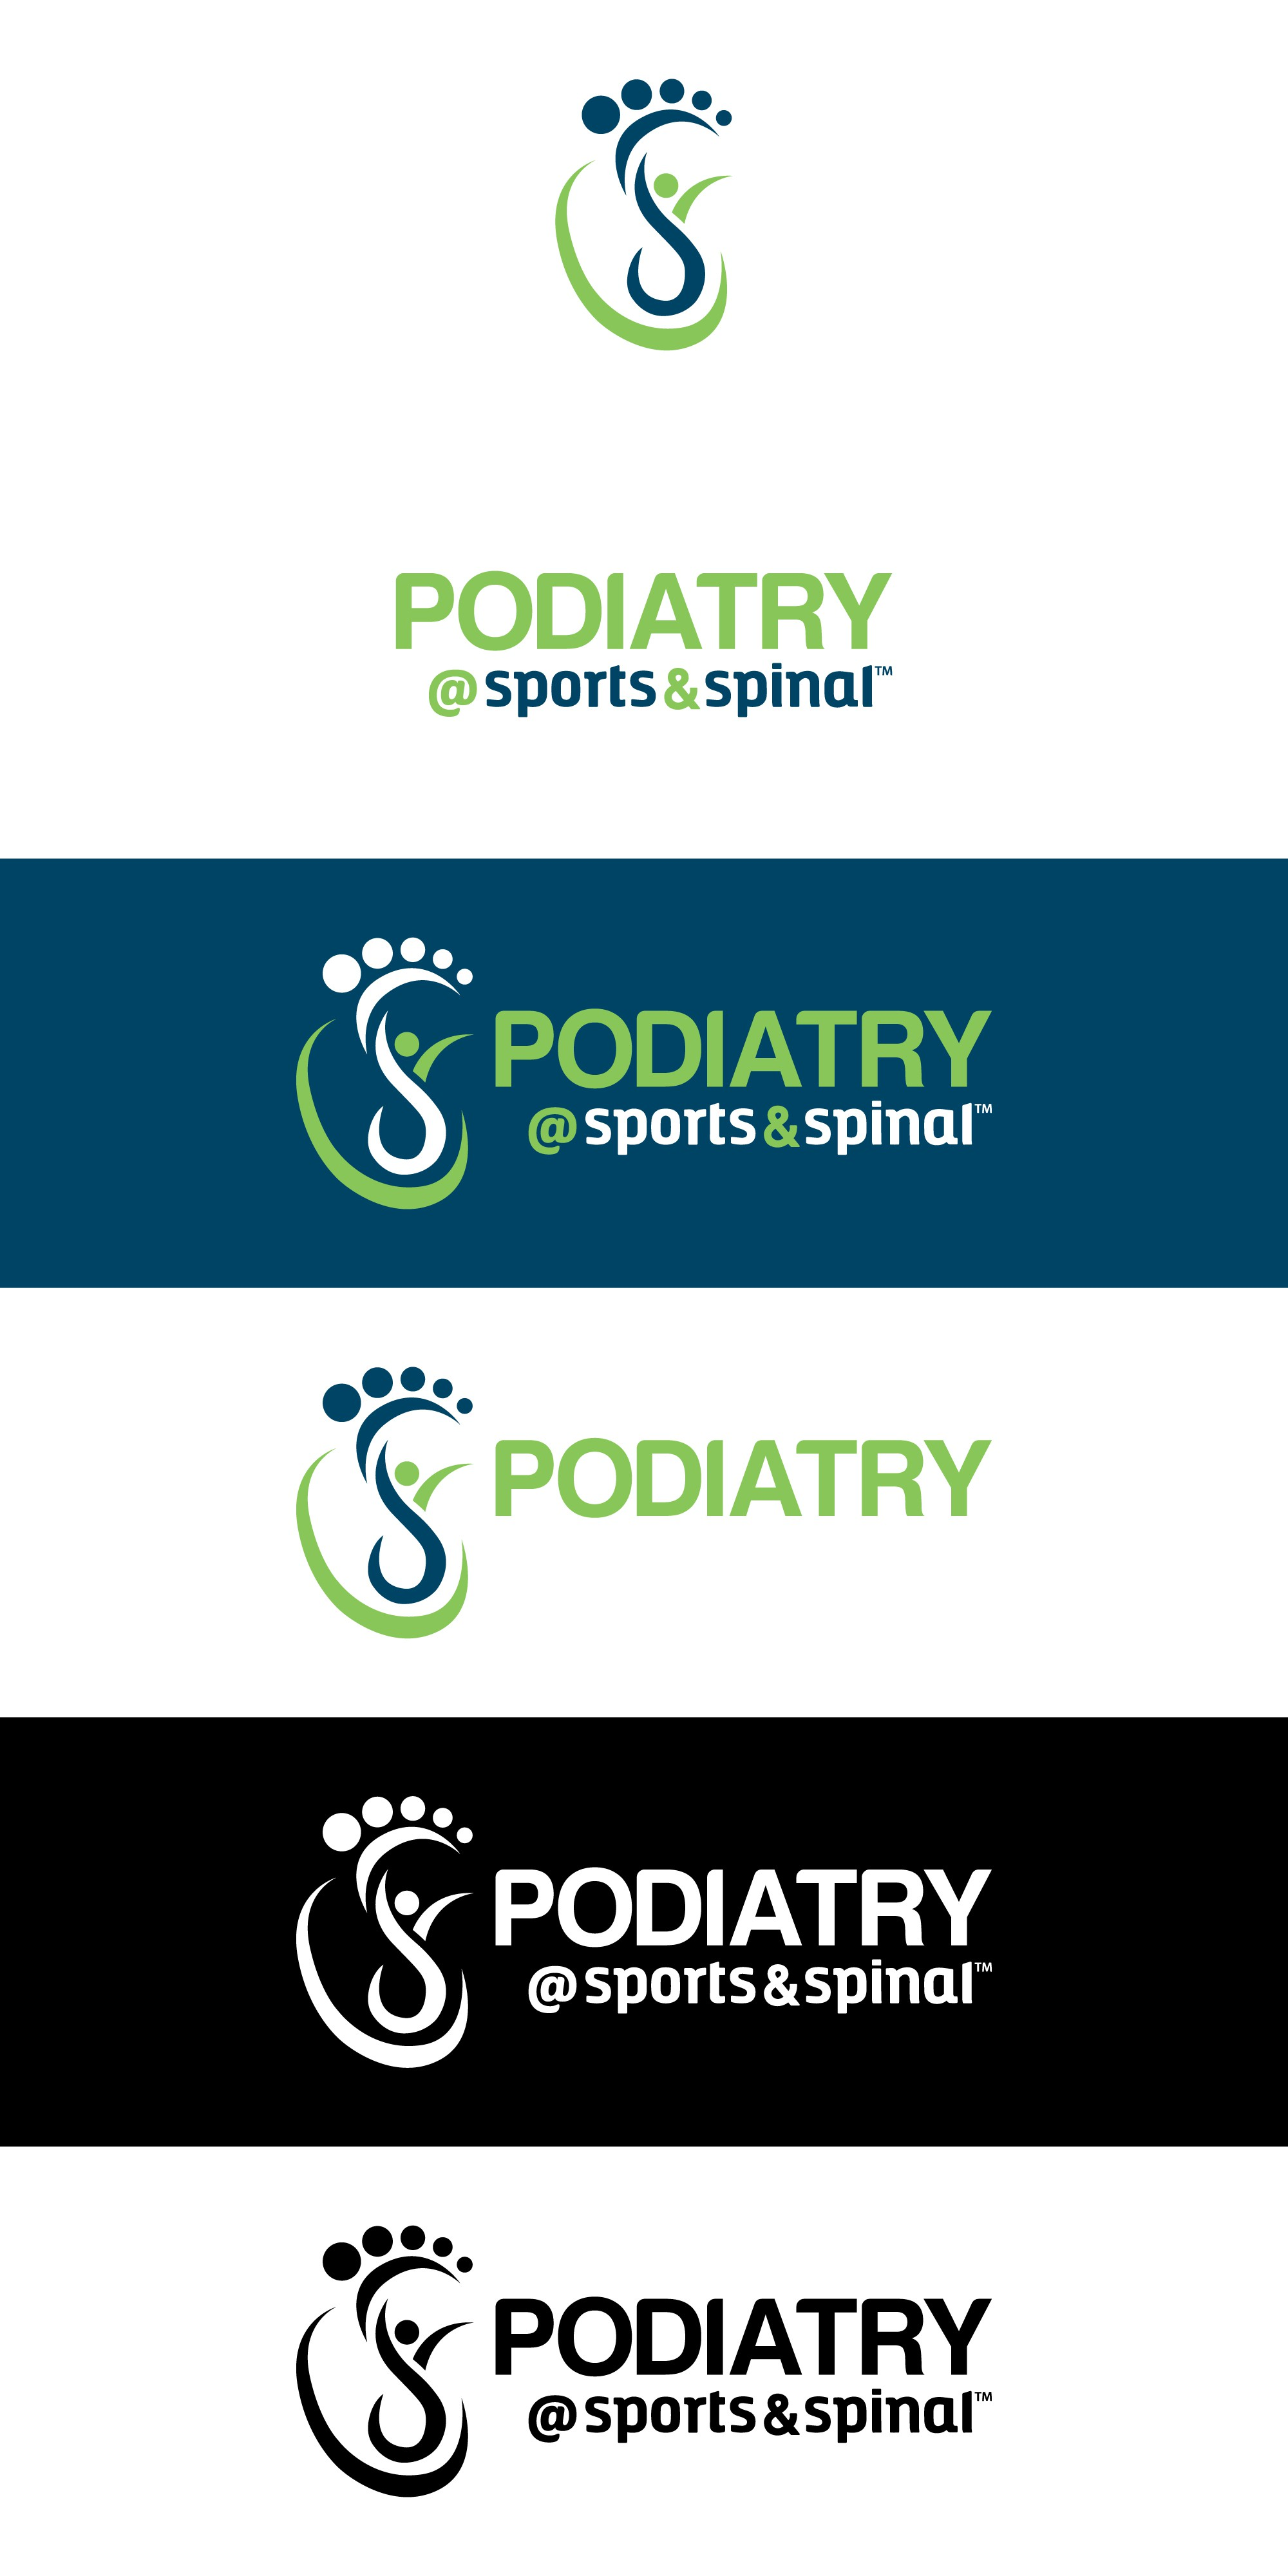 Create a Podiatry logo that is part of our brand family